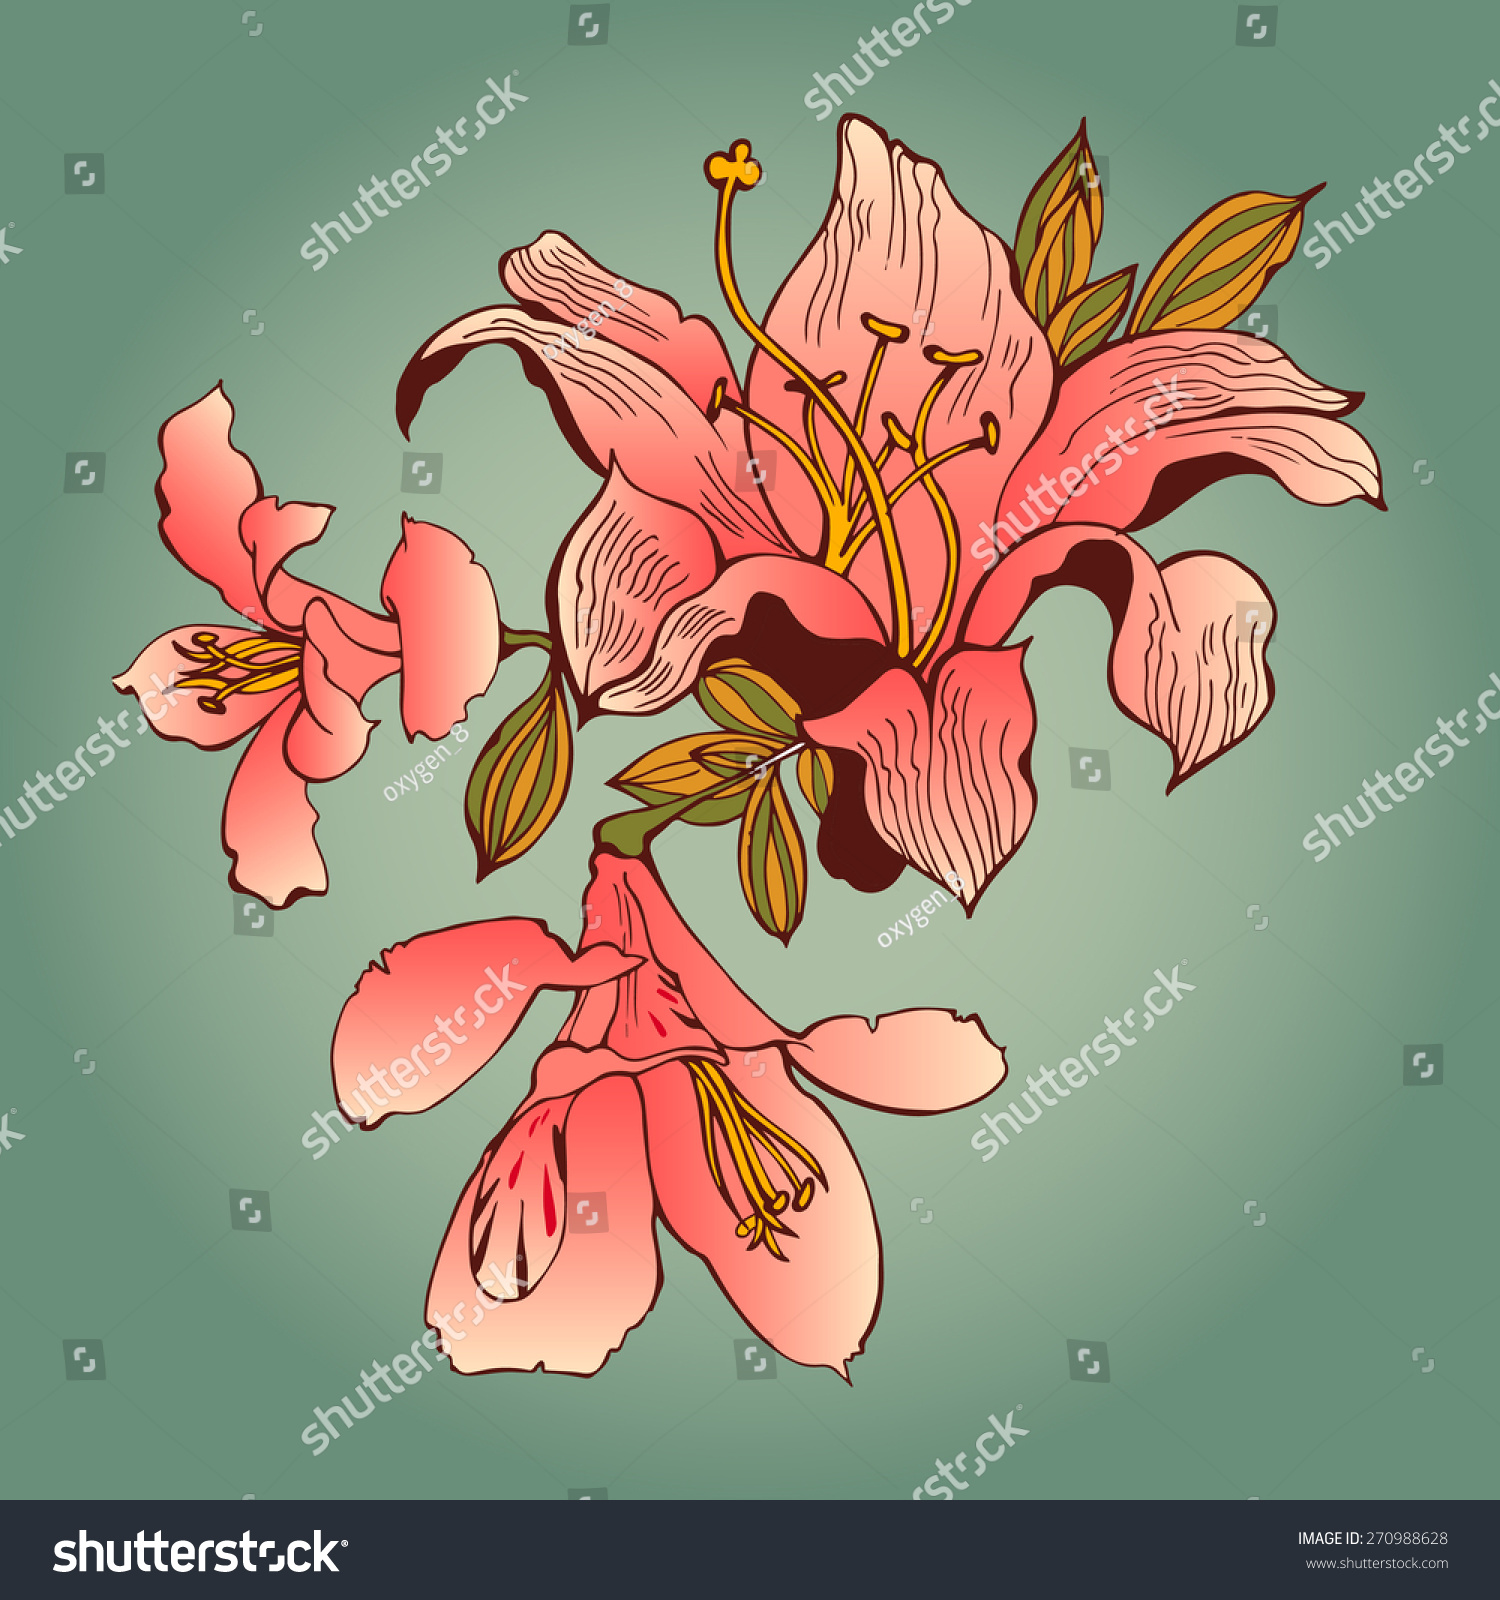 Beautiful flower art background decorative floral stock vector beautiful flower art background decorative floral elements for t shirt or other uses izmirmasajfo